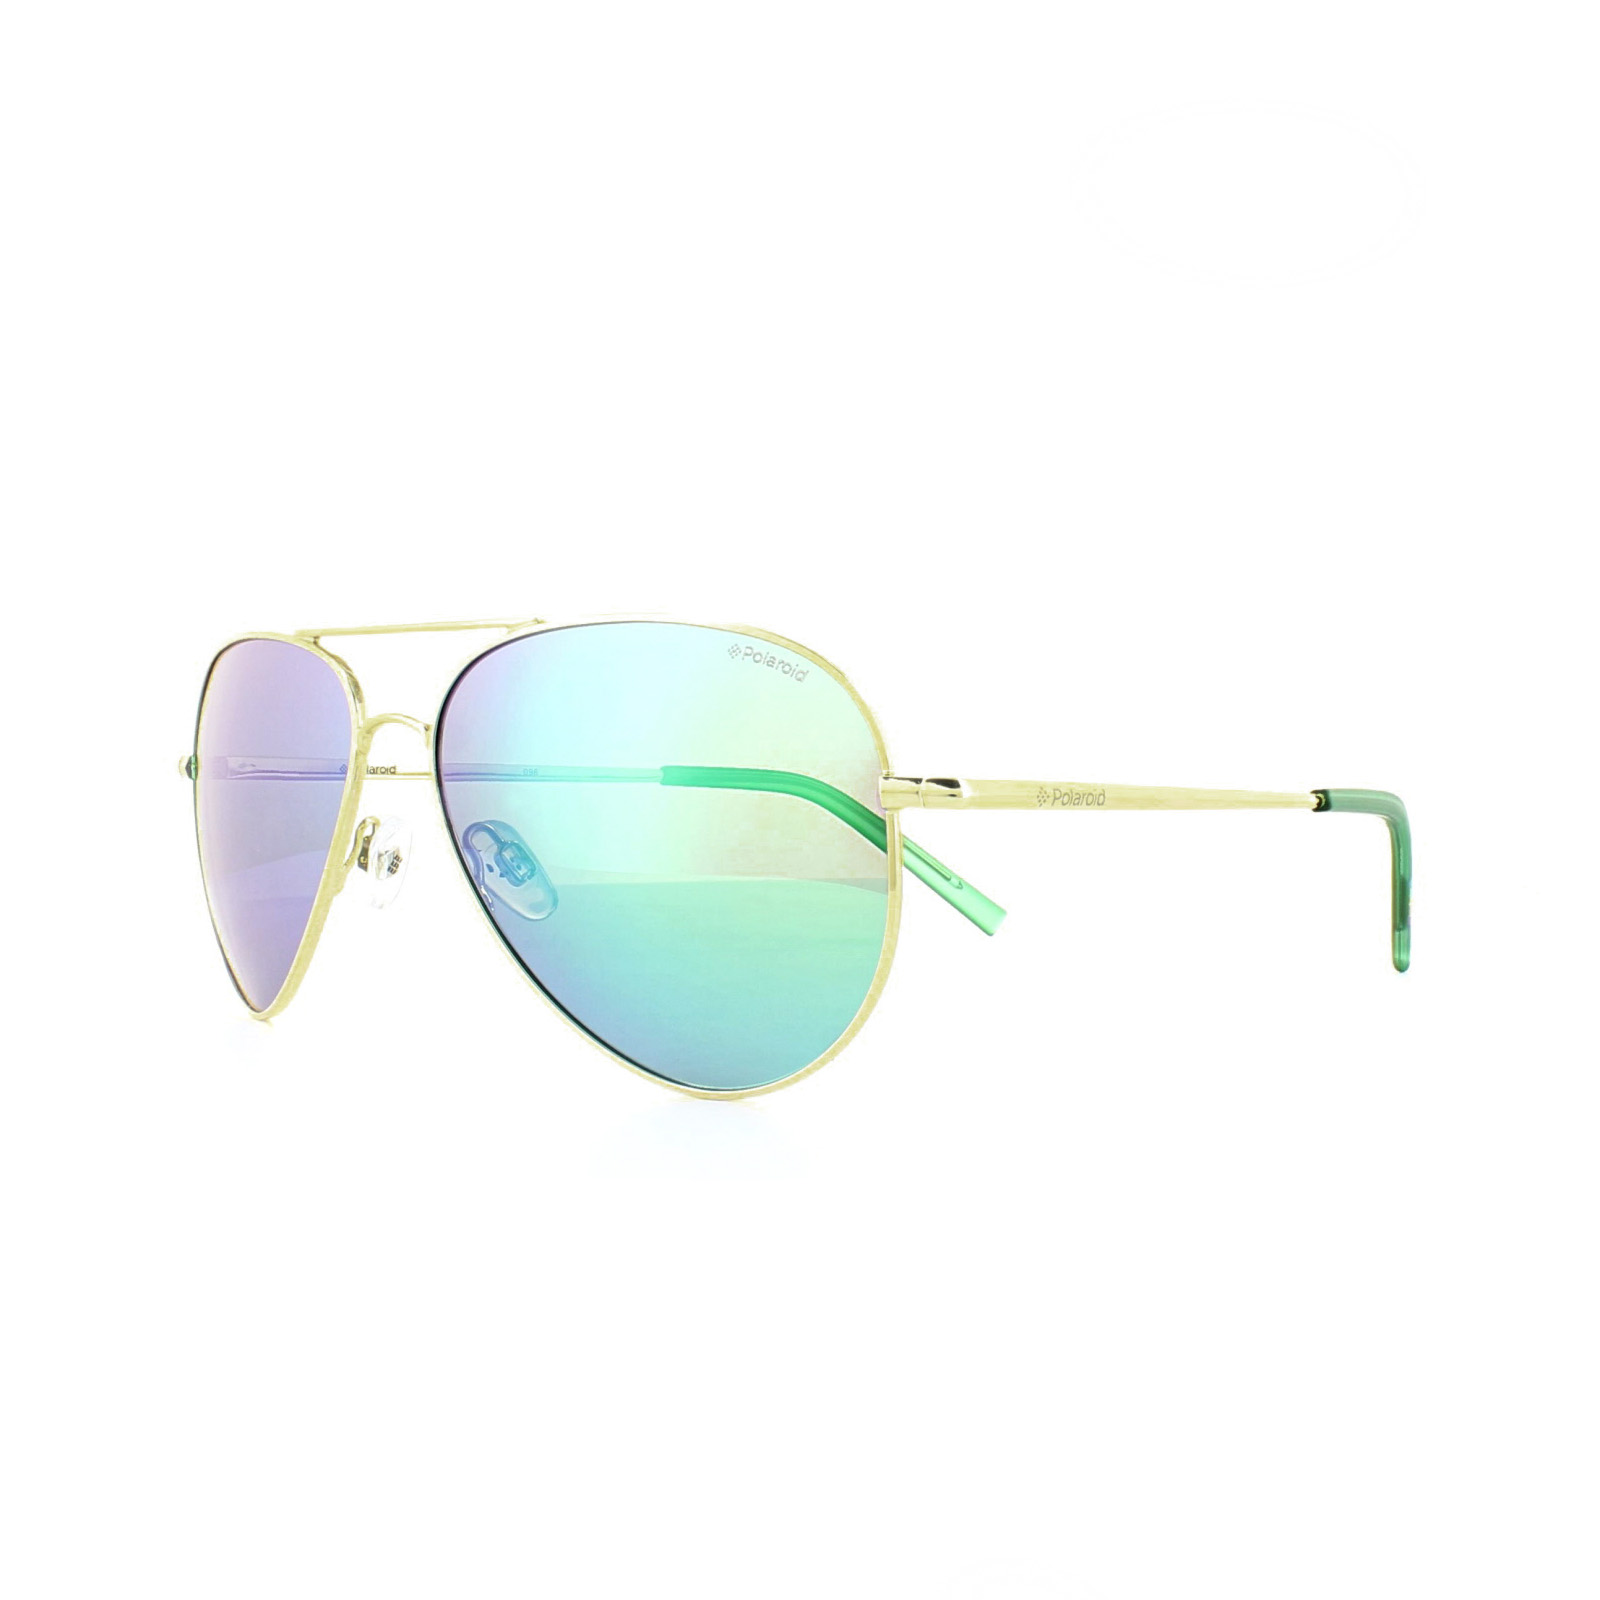 7ce668a3fa Sentinel Polaroid Sunglasses PLD 6012 N J5G K7 Gold Green Mirror Polarized